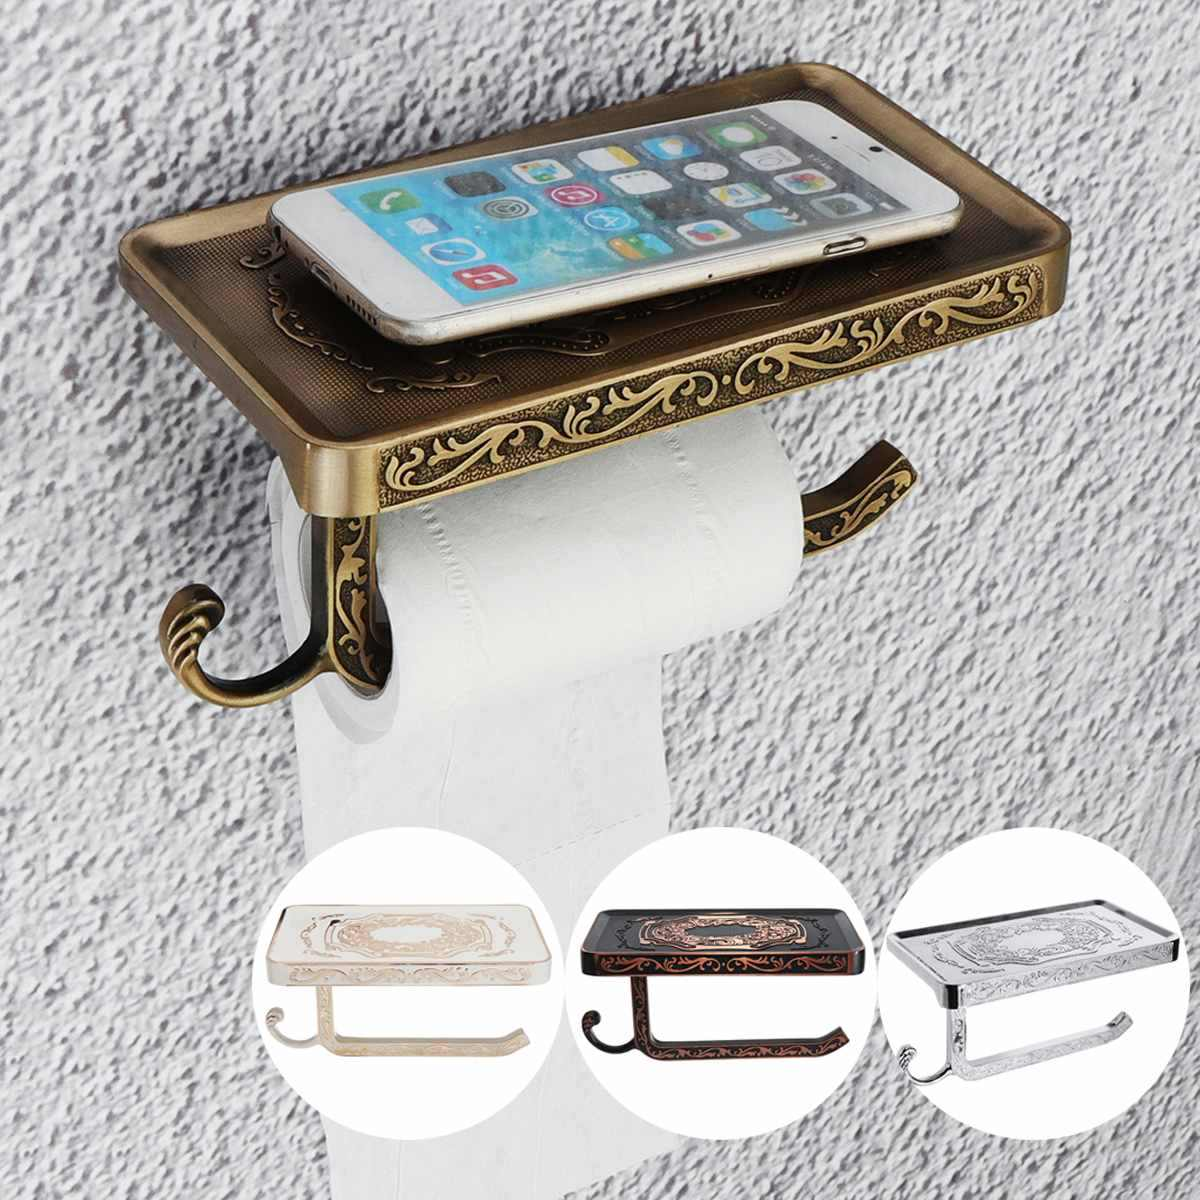 Retro Toilet WC Paper Holder Bathroom Paper Holder Space Aluminum Bathroom Toilet Towel Holder Paper Hook and Phone Holder Mount